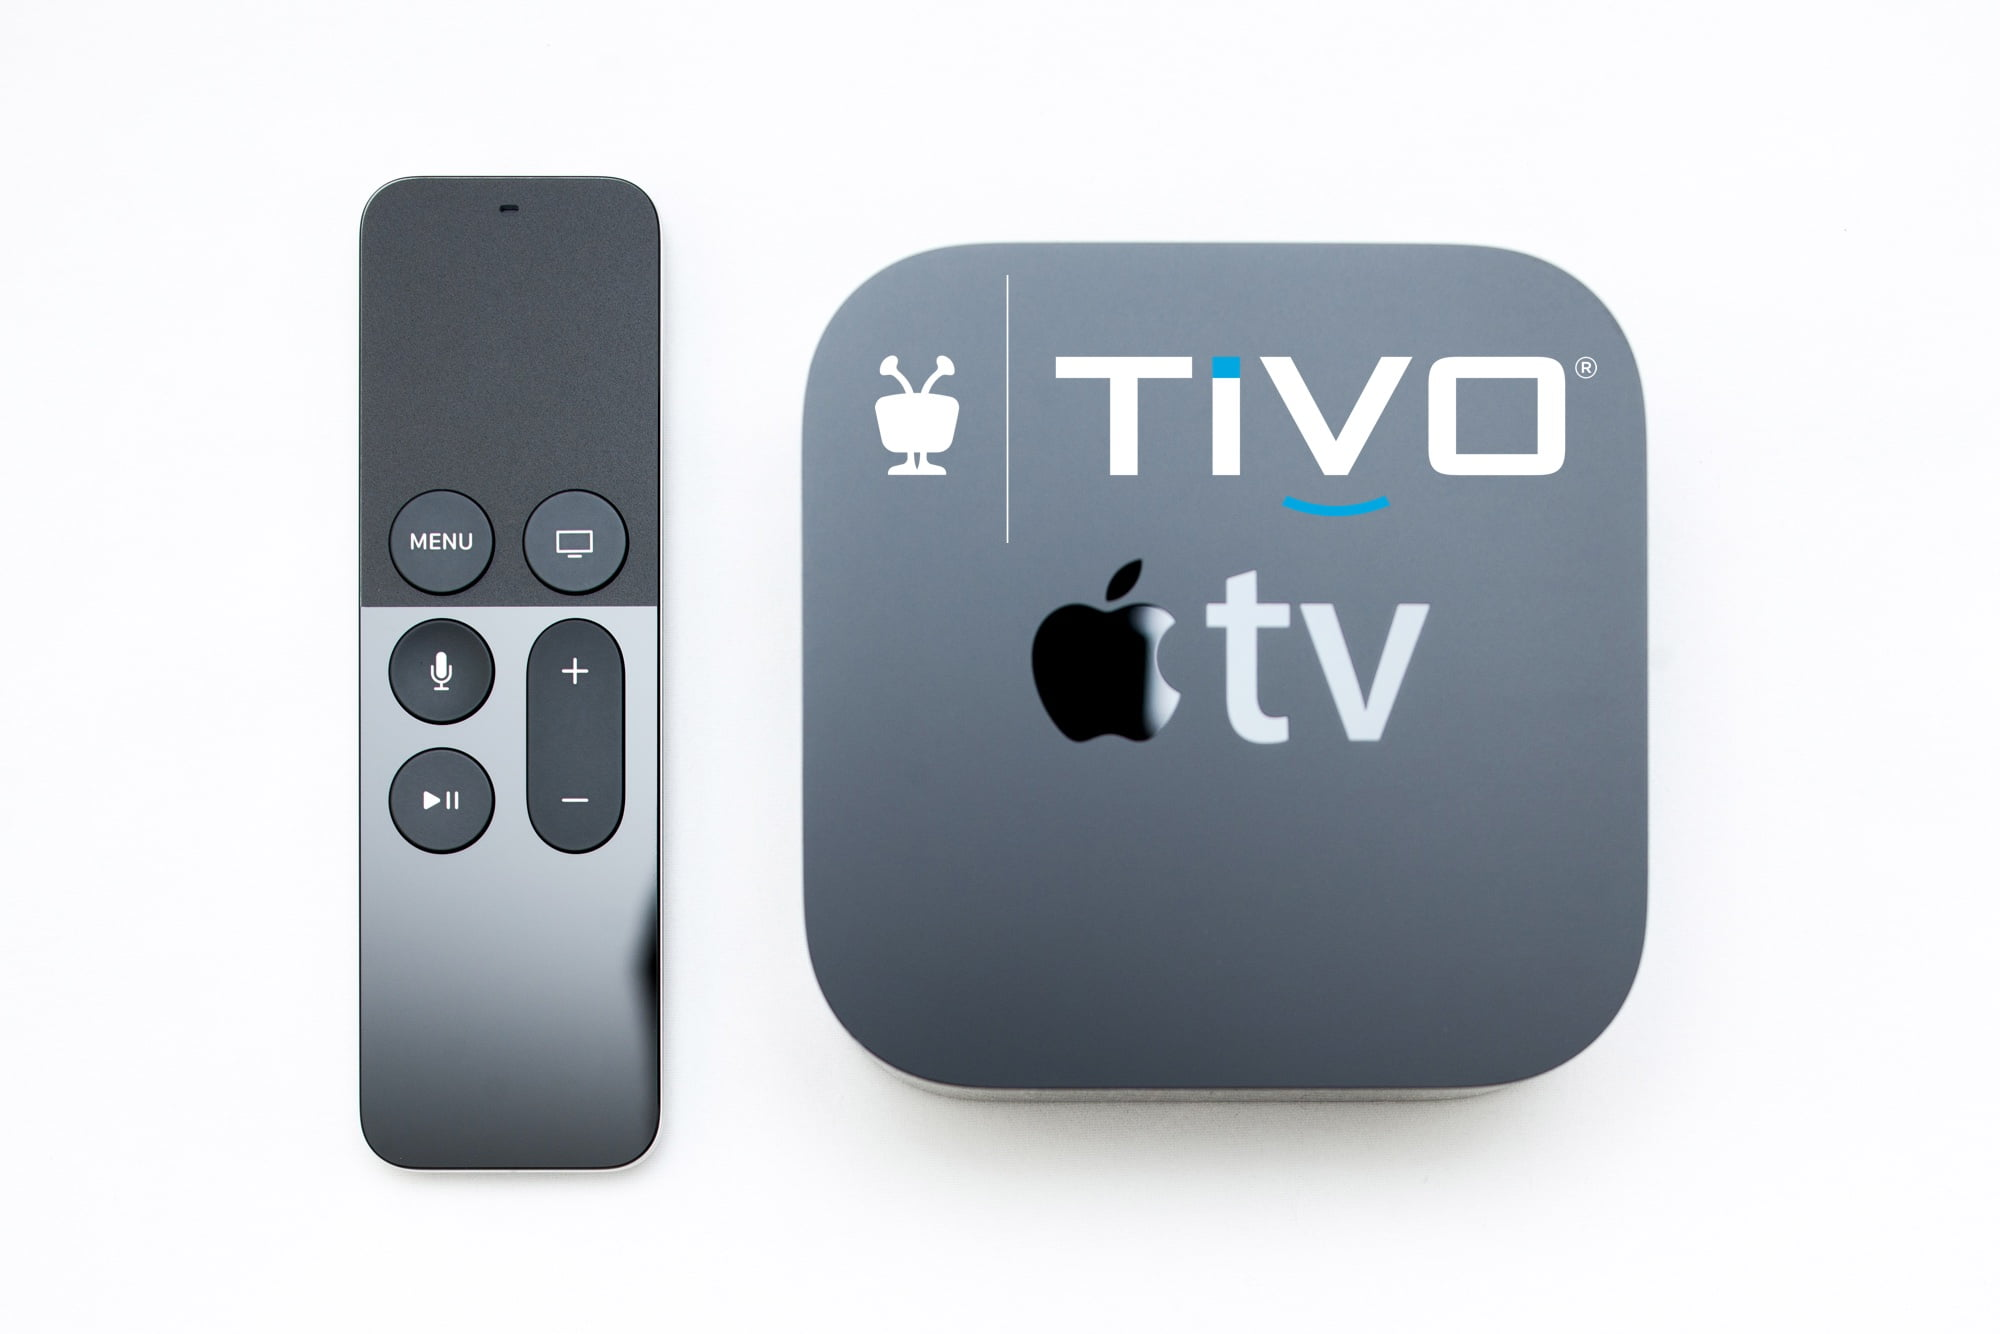 TiVo discontinues development of its Apple TV app due to technical difficulties